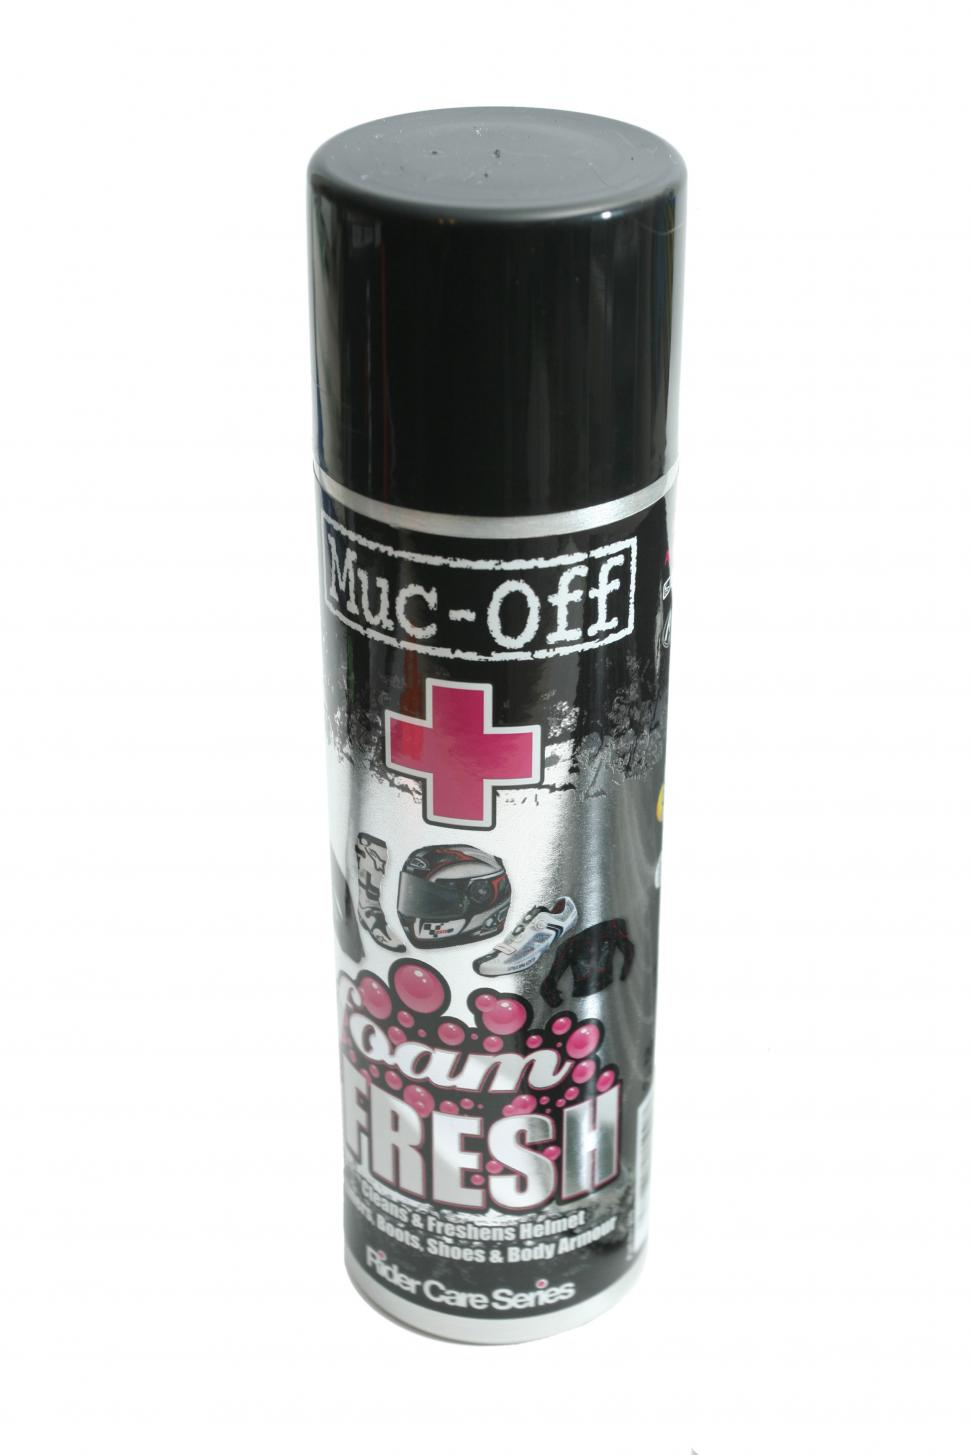 Muc-Off Foam Fresh helmet and shoe cleaner